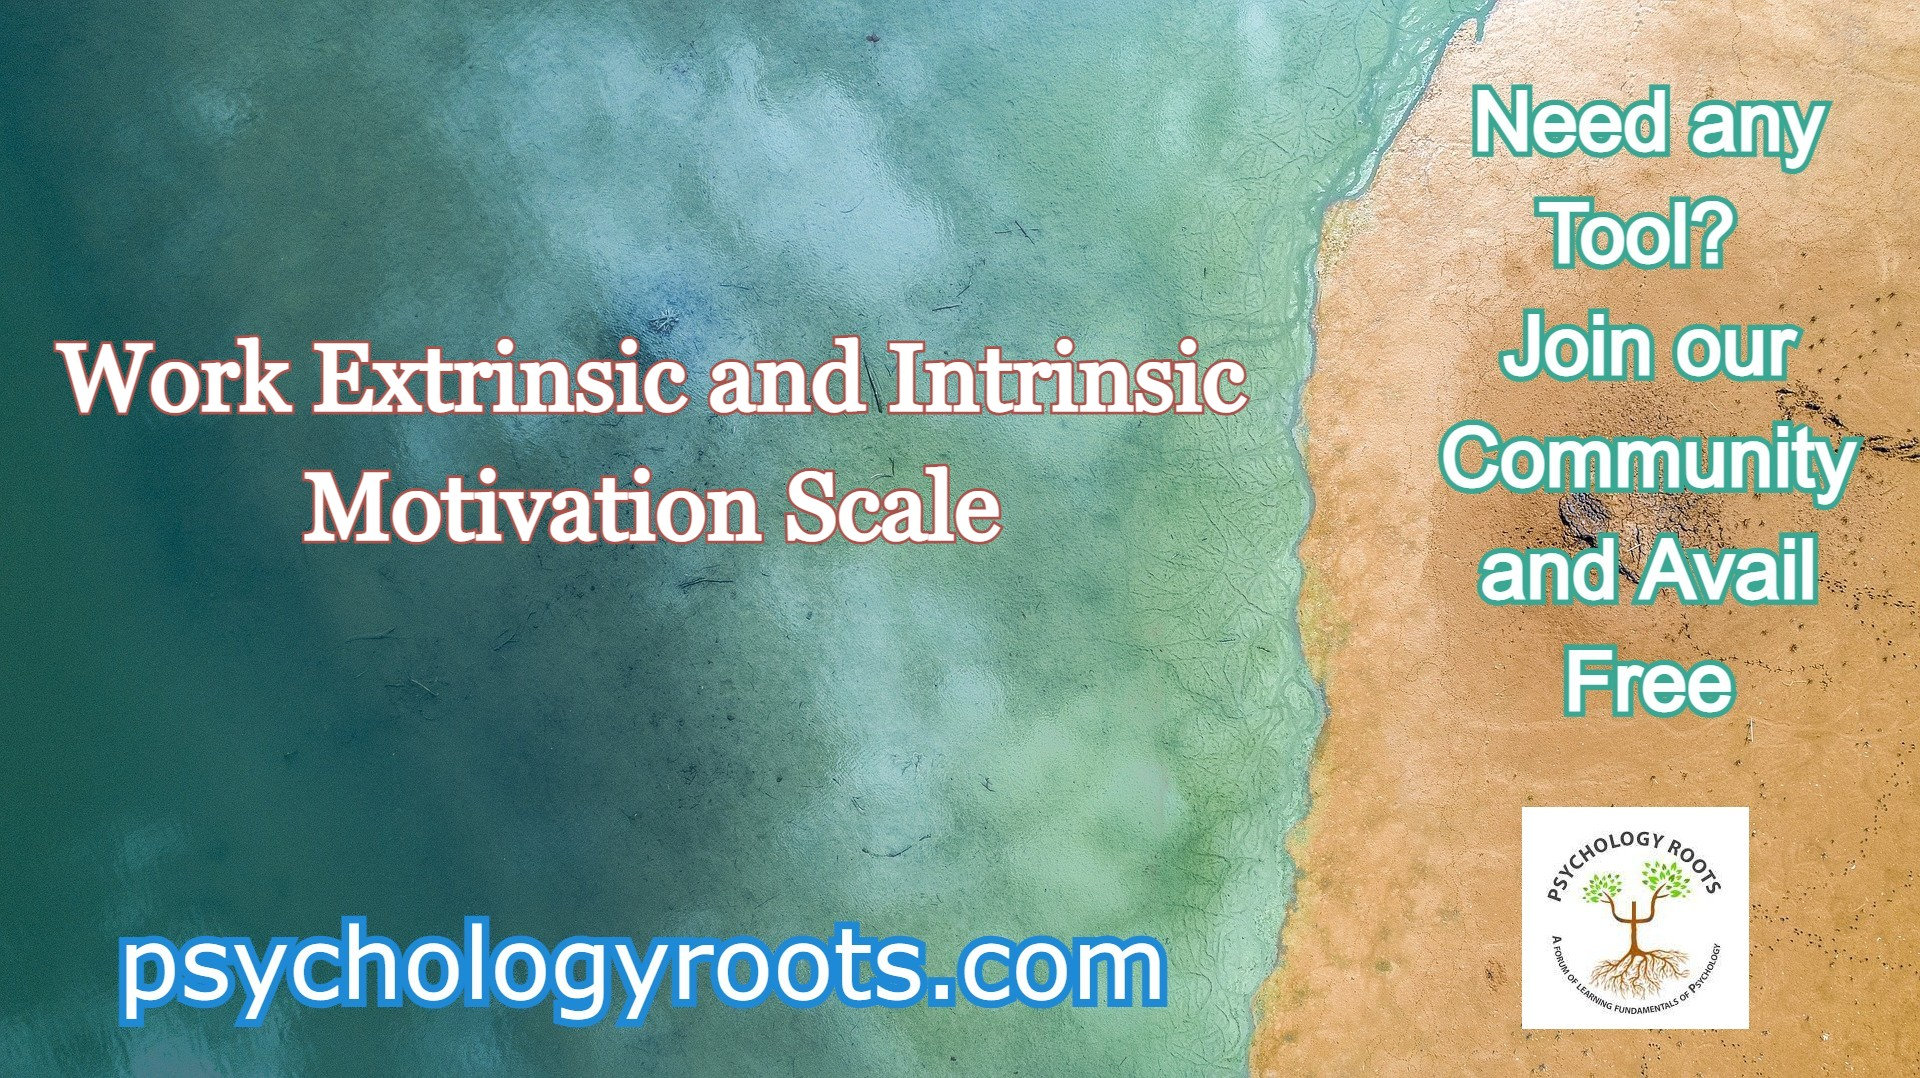 Work Extrinsic and Intrinsic Motivation Scale